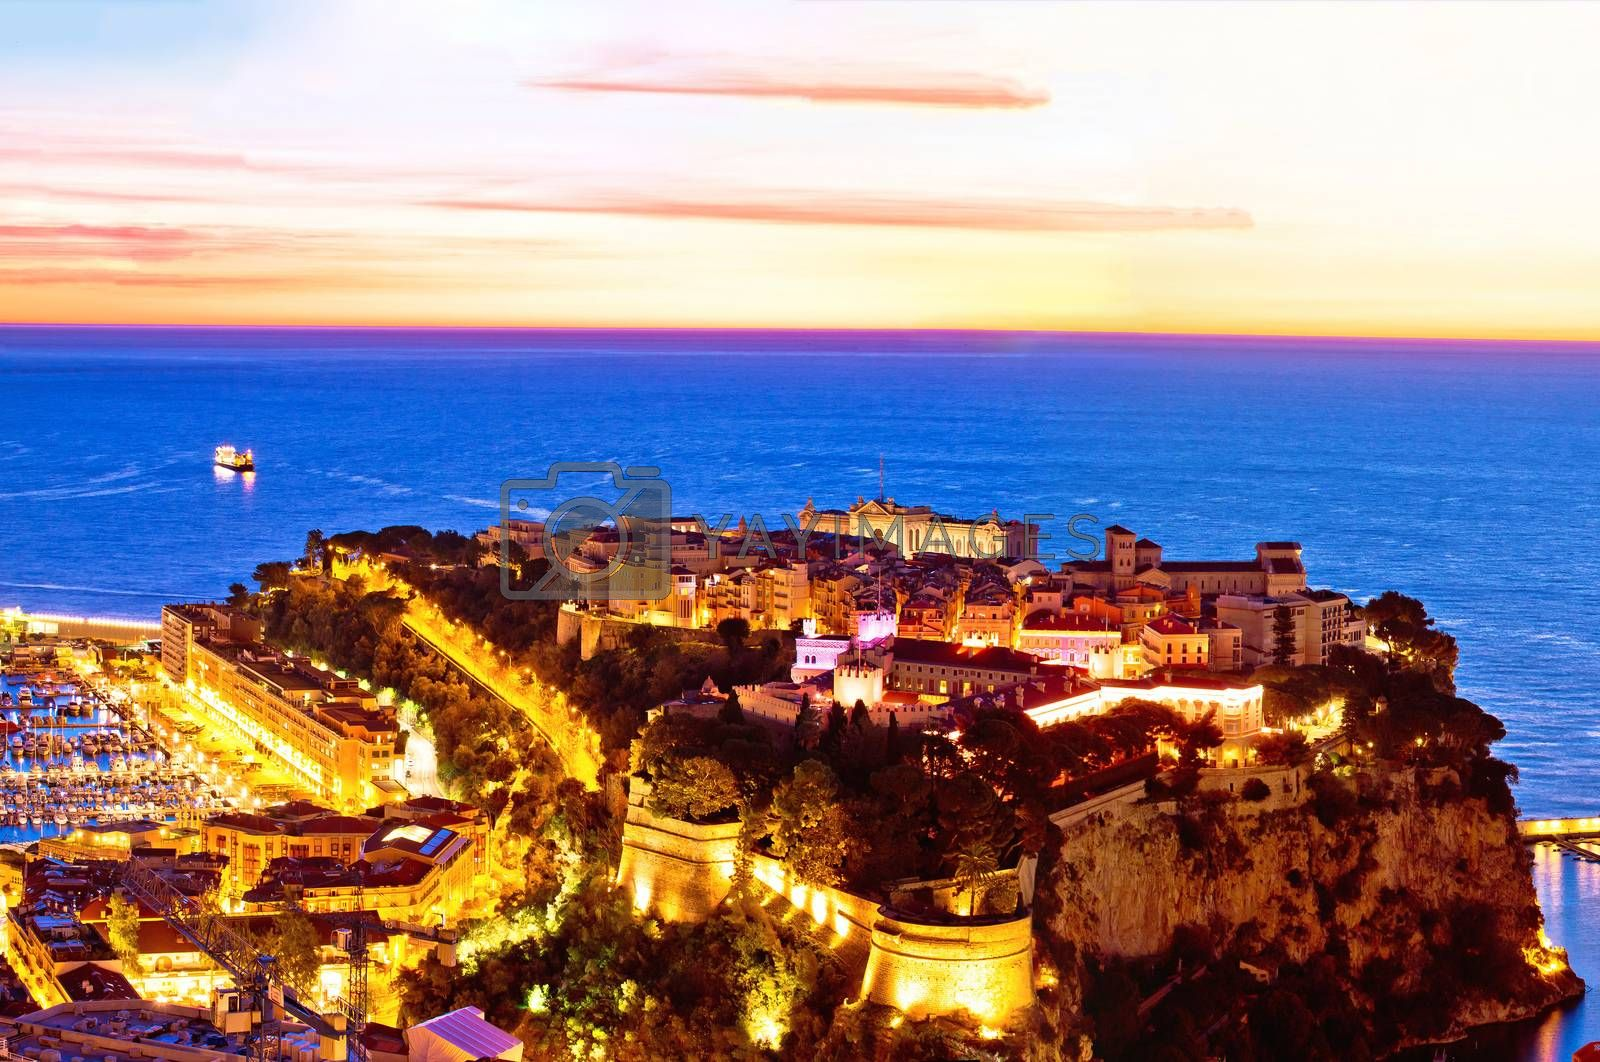 Old Monaco town on the rock colorful evening panoramic view from above, Principality of Monaco